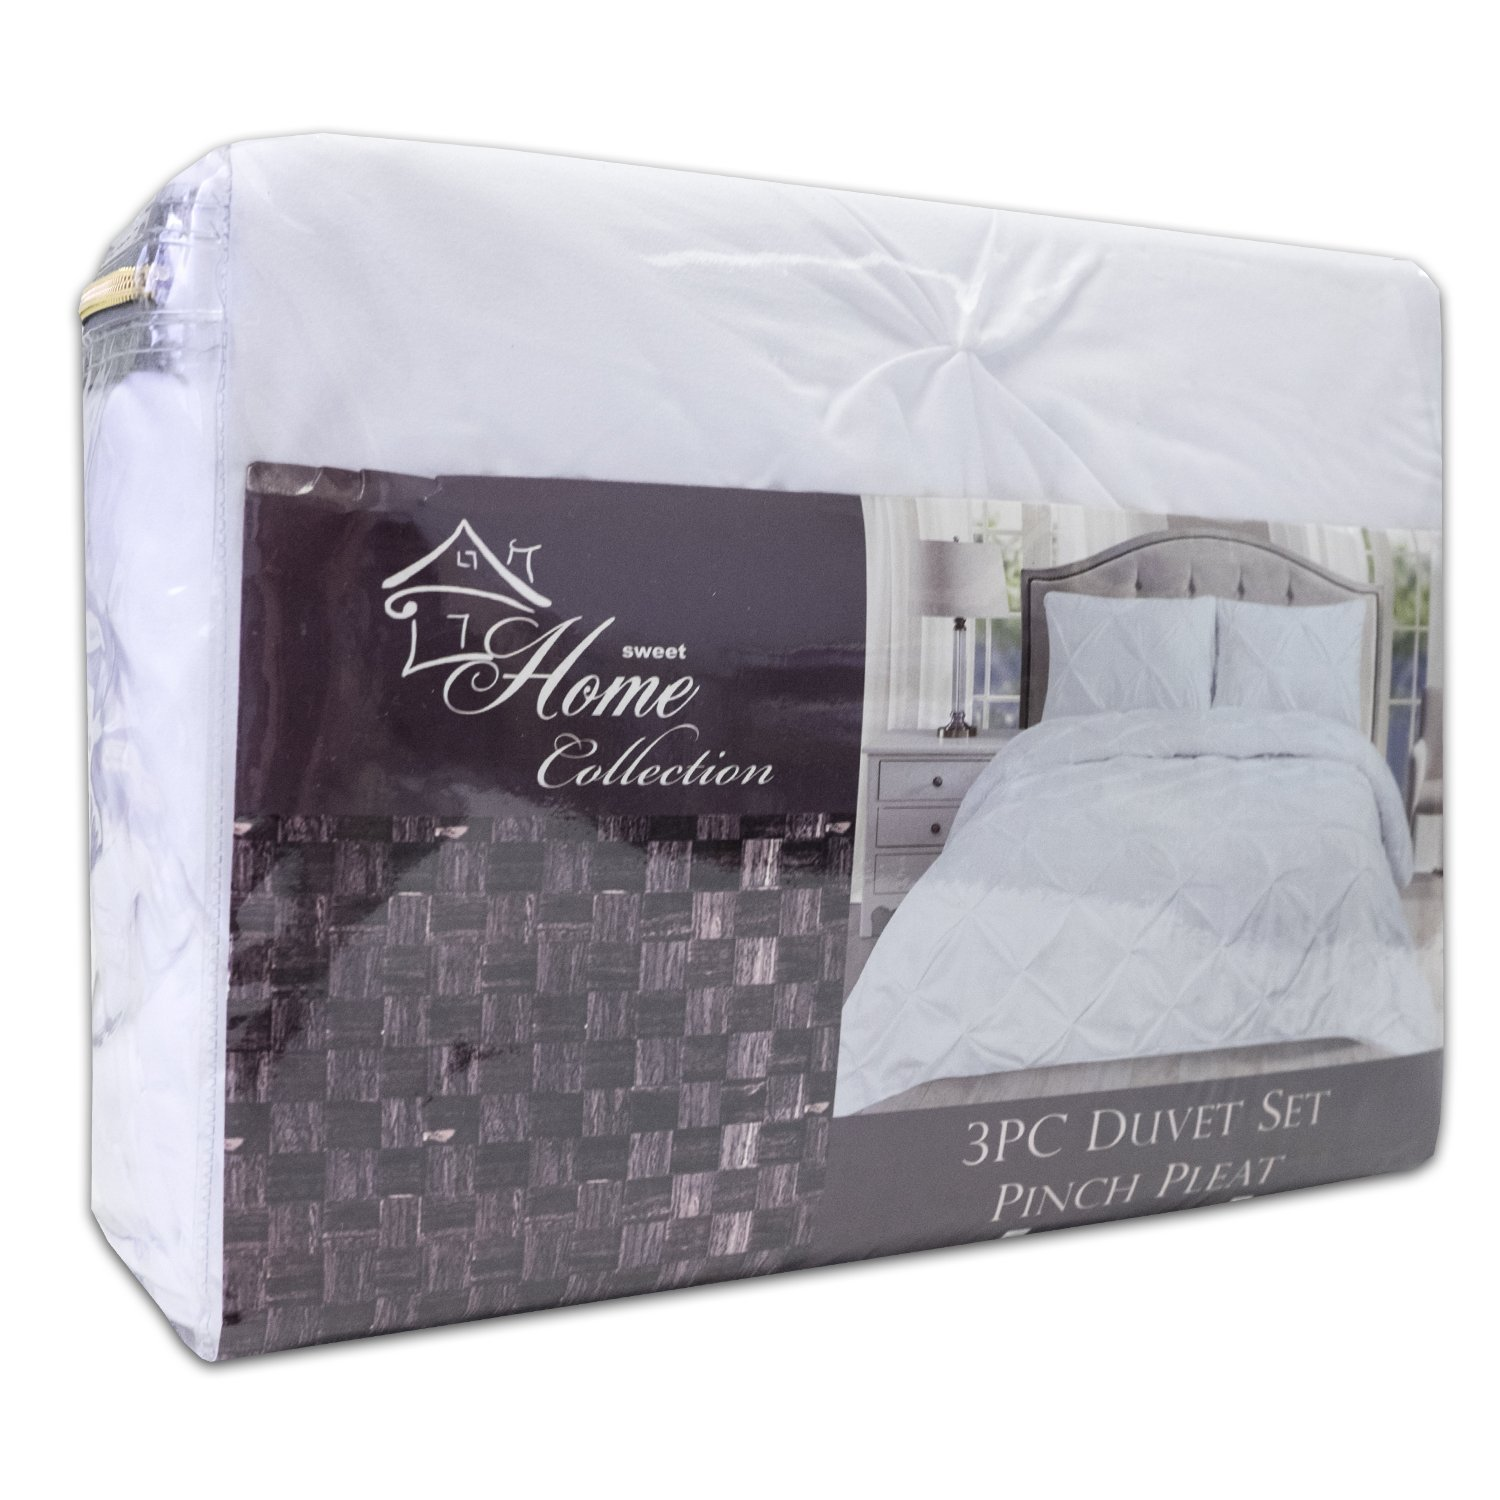 Sweet Home Collection 3 Piece Luxury Pinch Pleat Pintuck Fashion Duvet Set, Queen, White